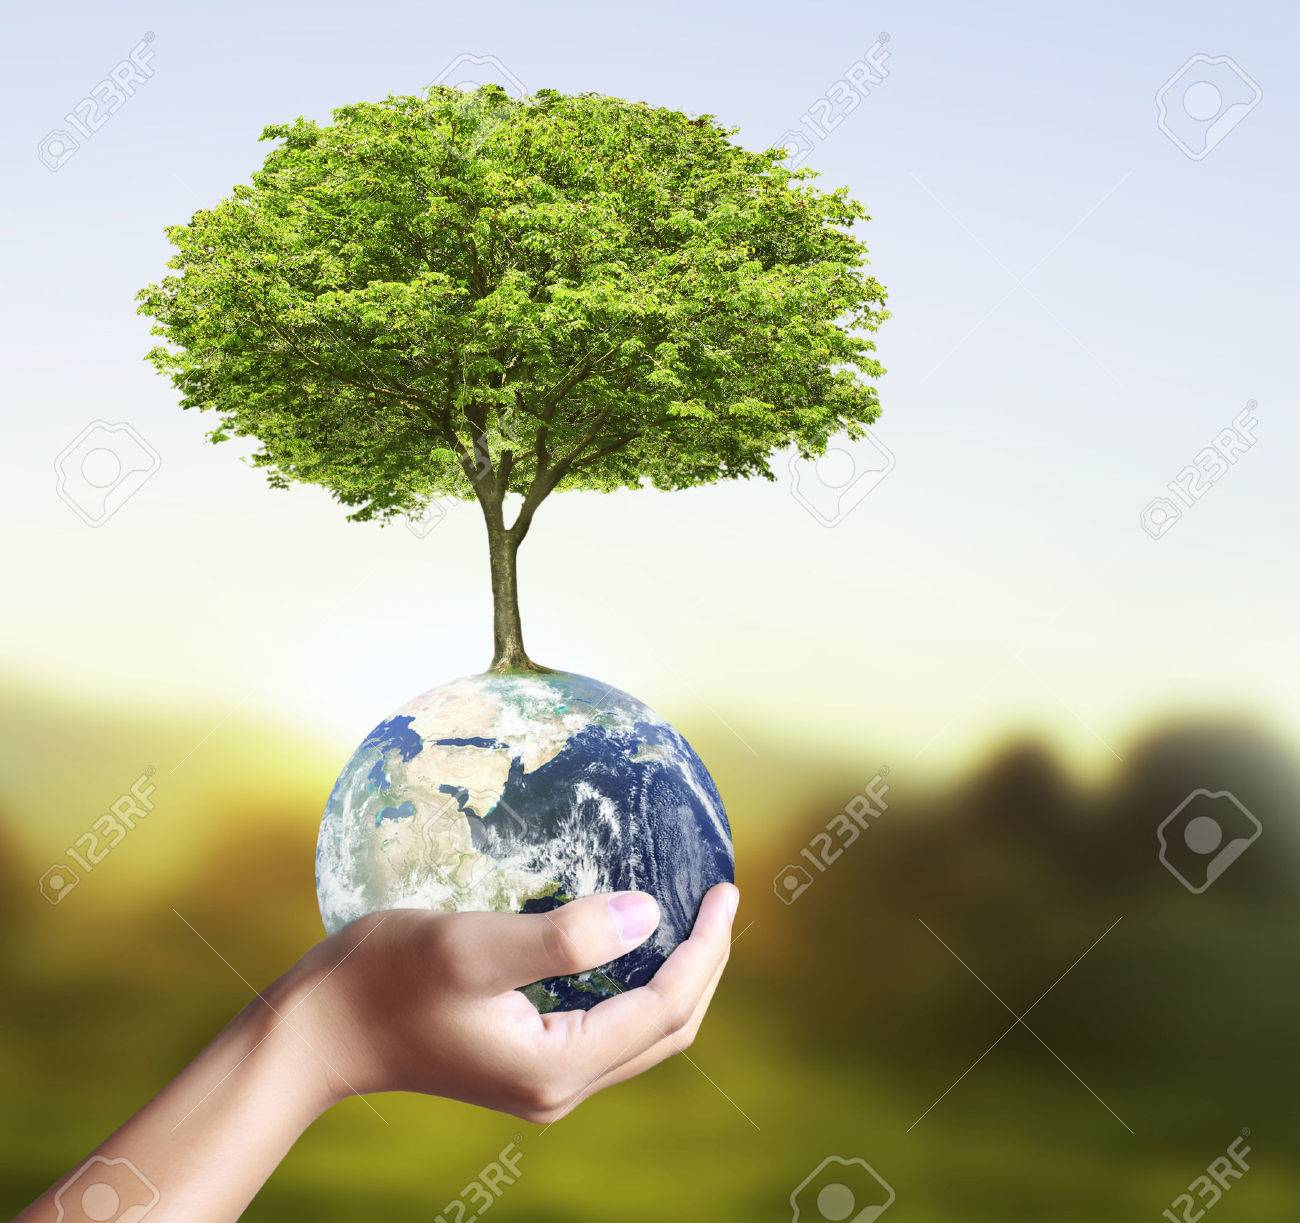 holding a glowing earth globe and tree in his hand - 23478457